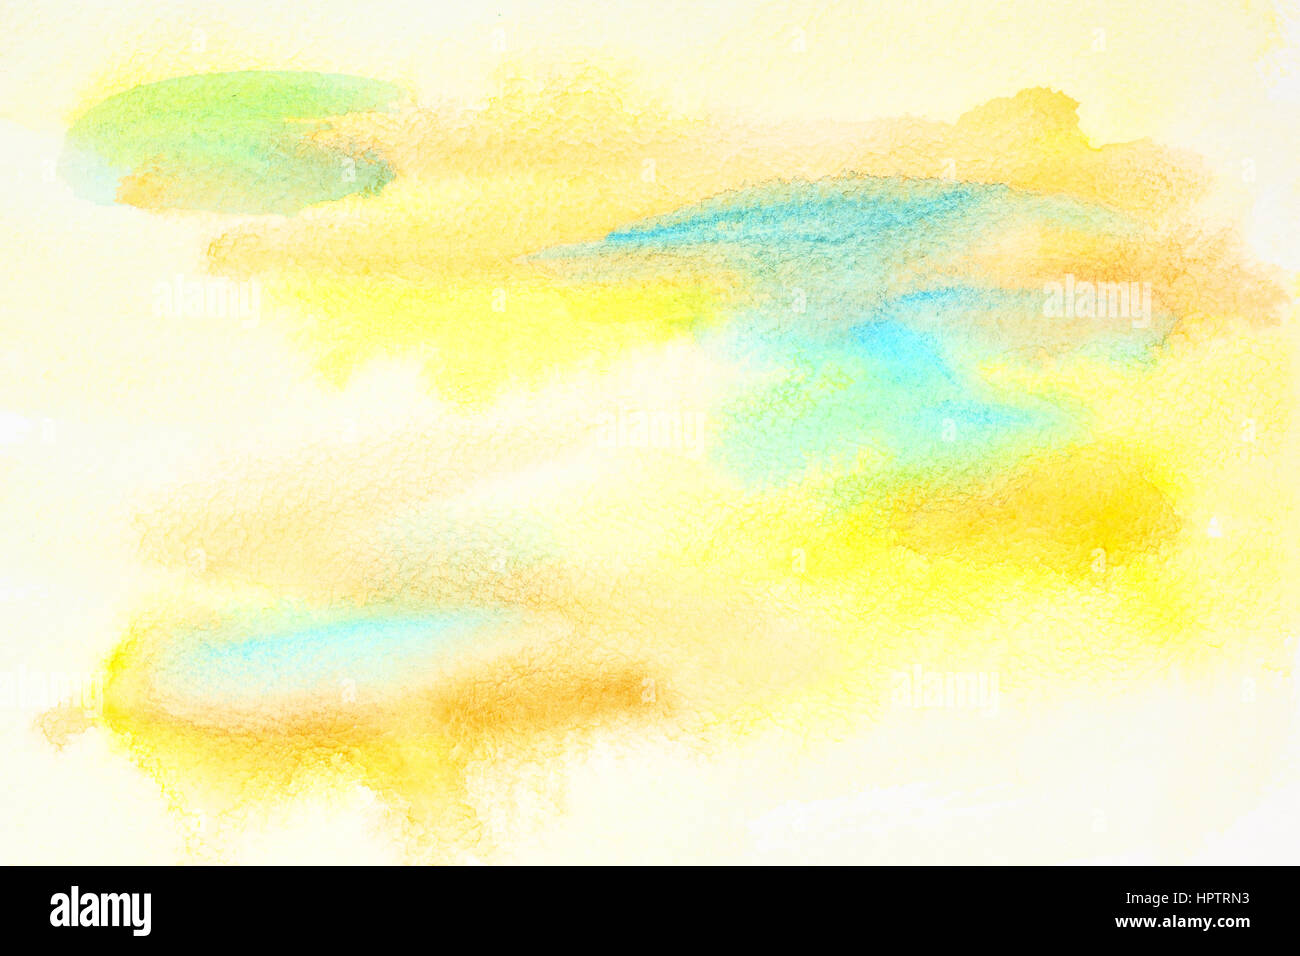 Pastel yellow abstract watercolor background with paper txture Stock Photo